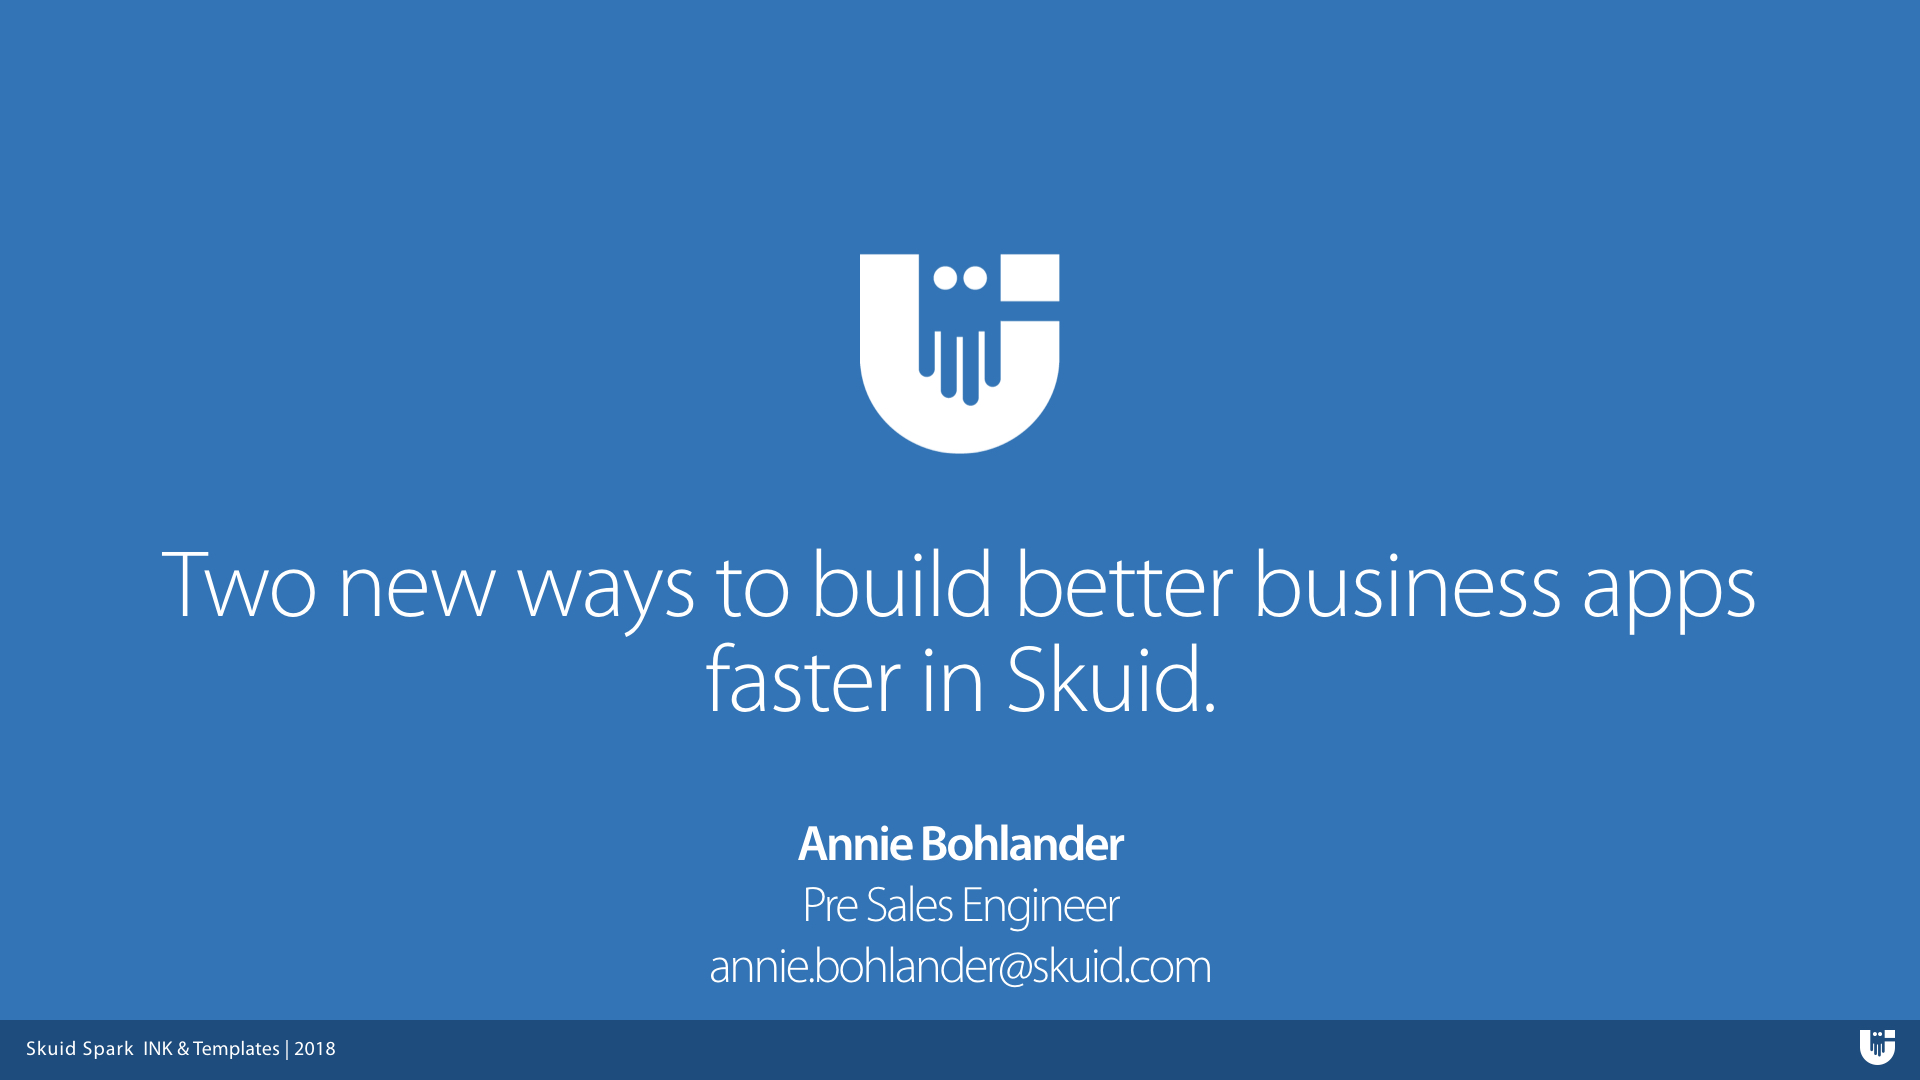 Two new ways to build better business apps faster in Skuid.